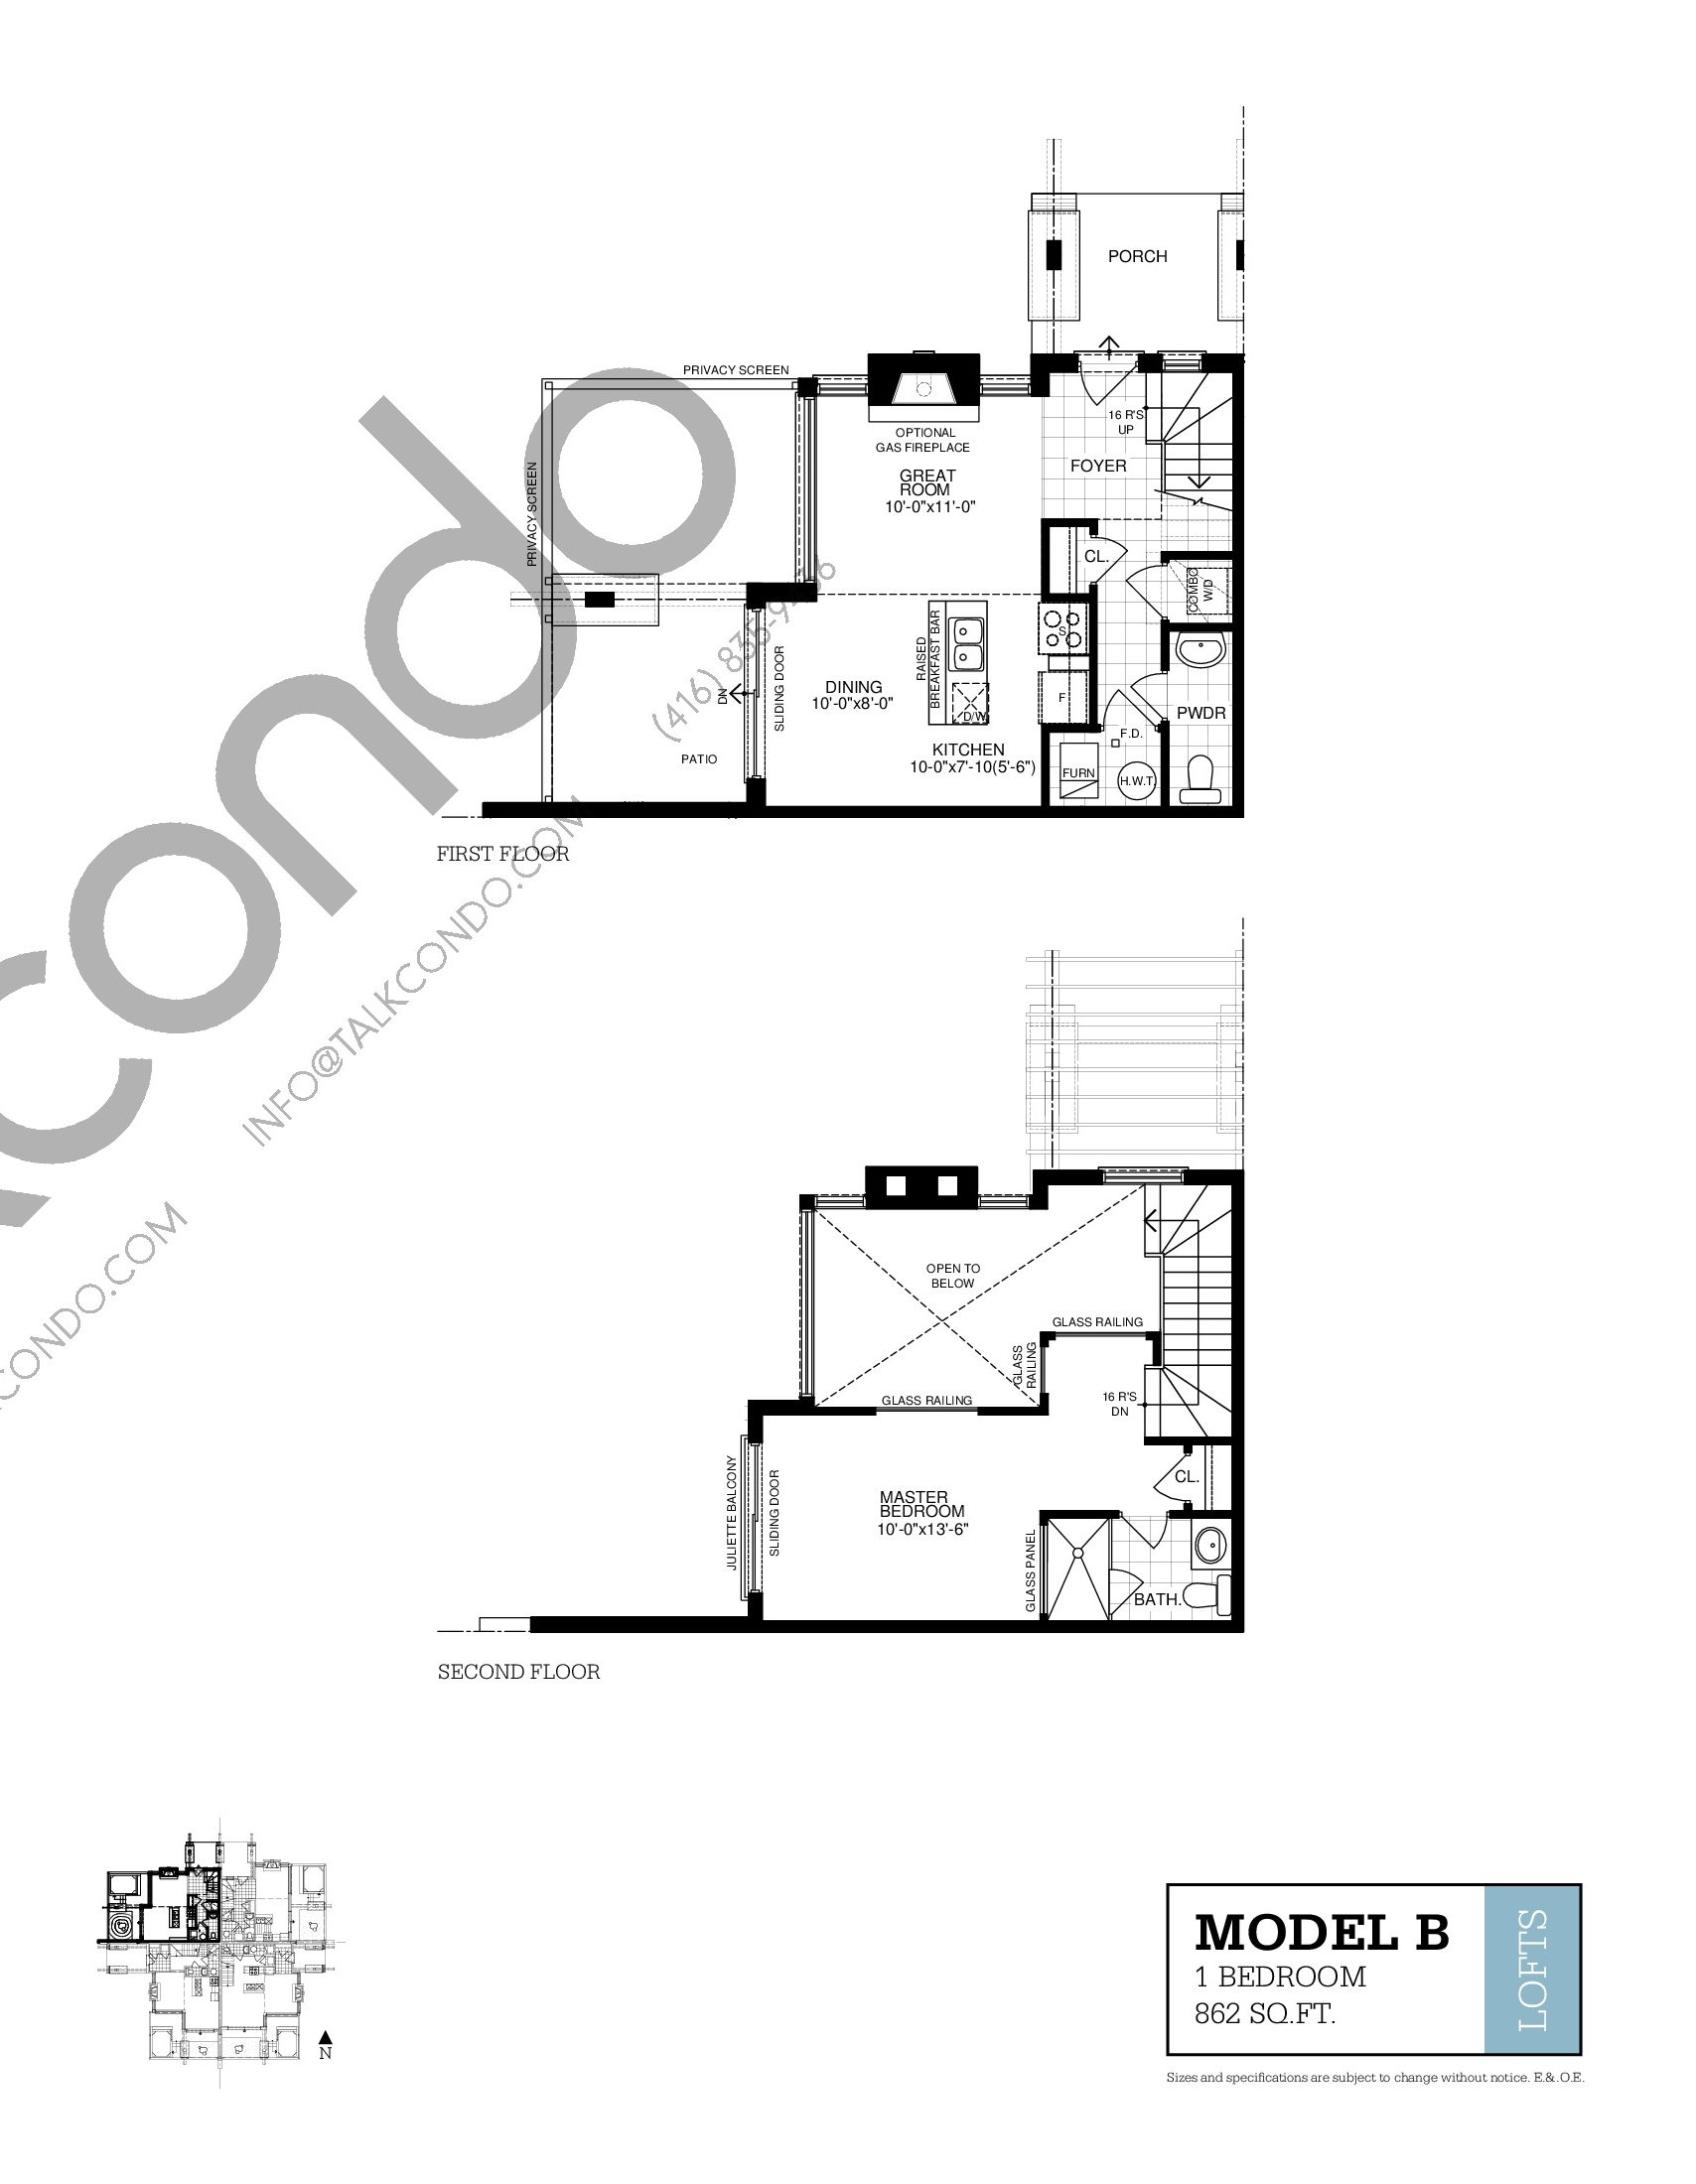 Loft B Floor Plan at Muskoka Bay Resort - 862 sq.ft